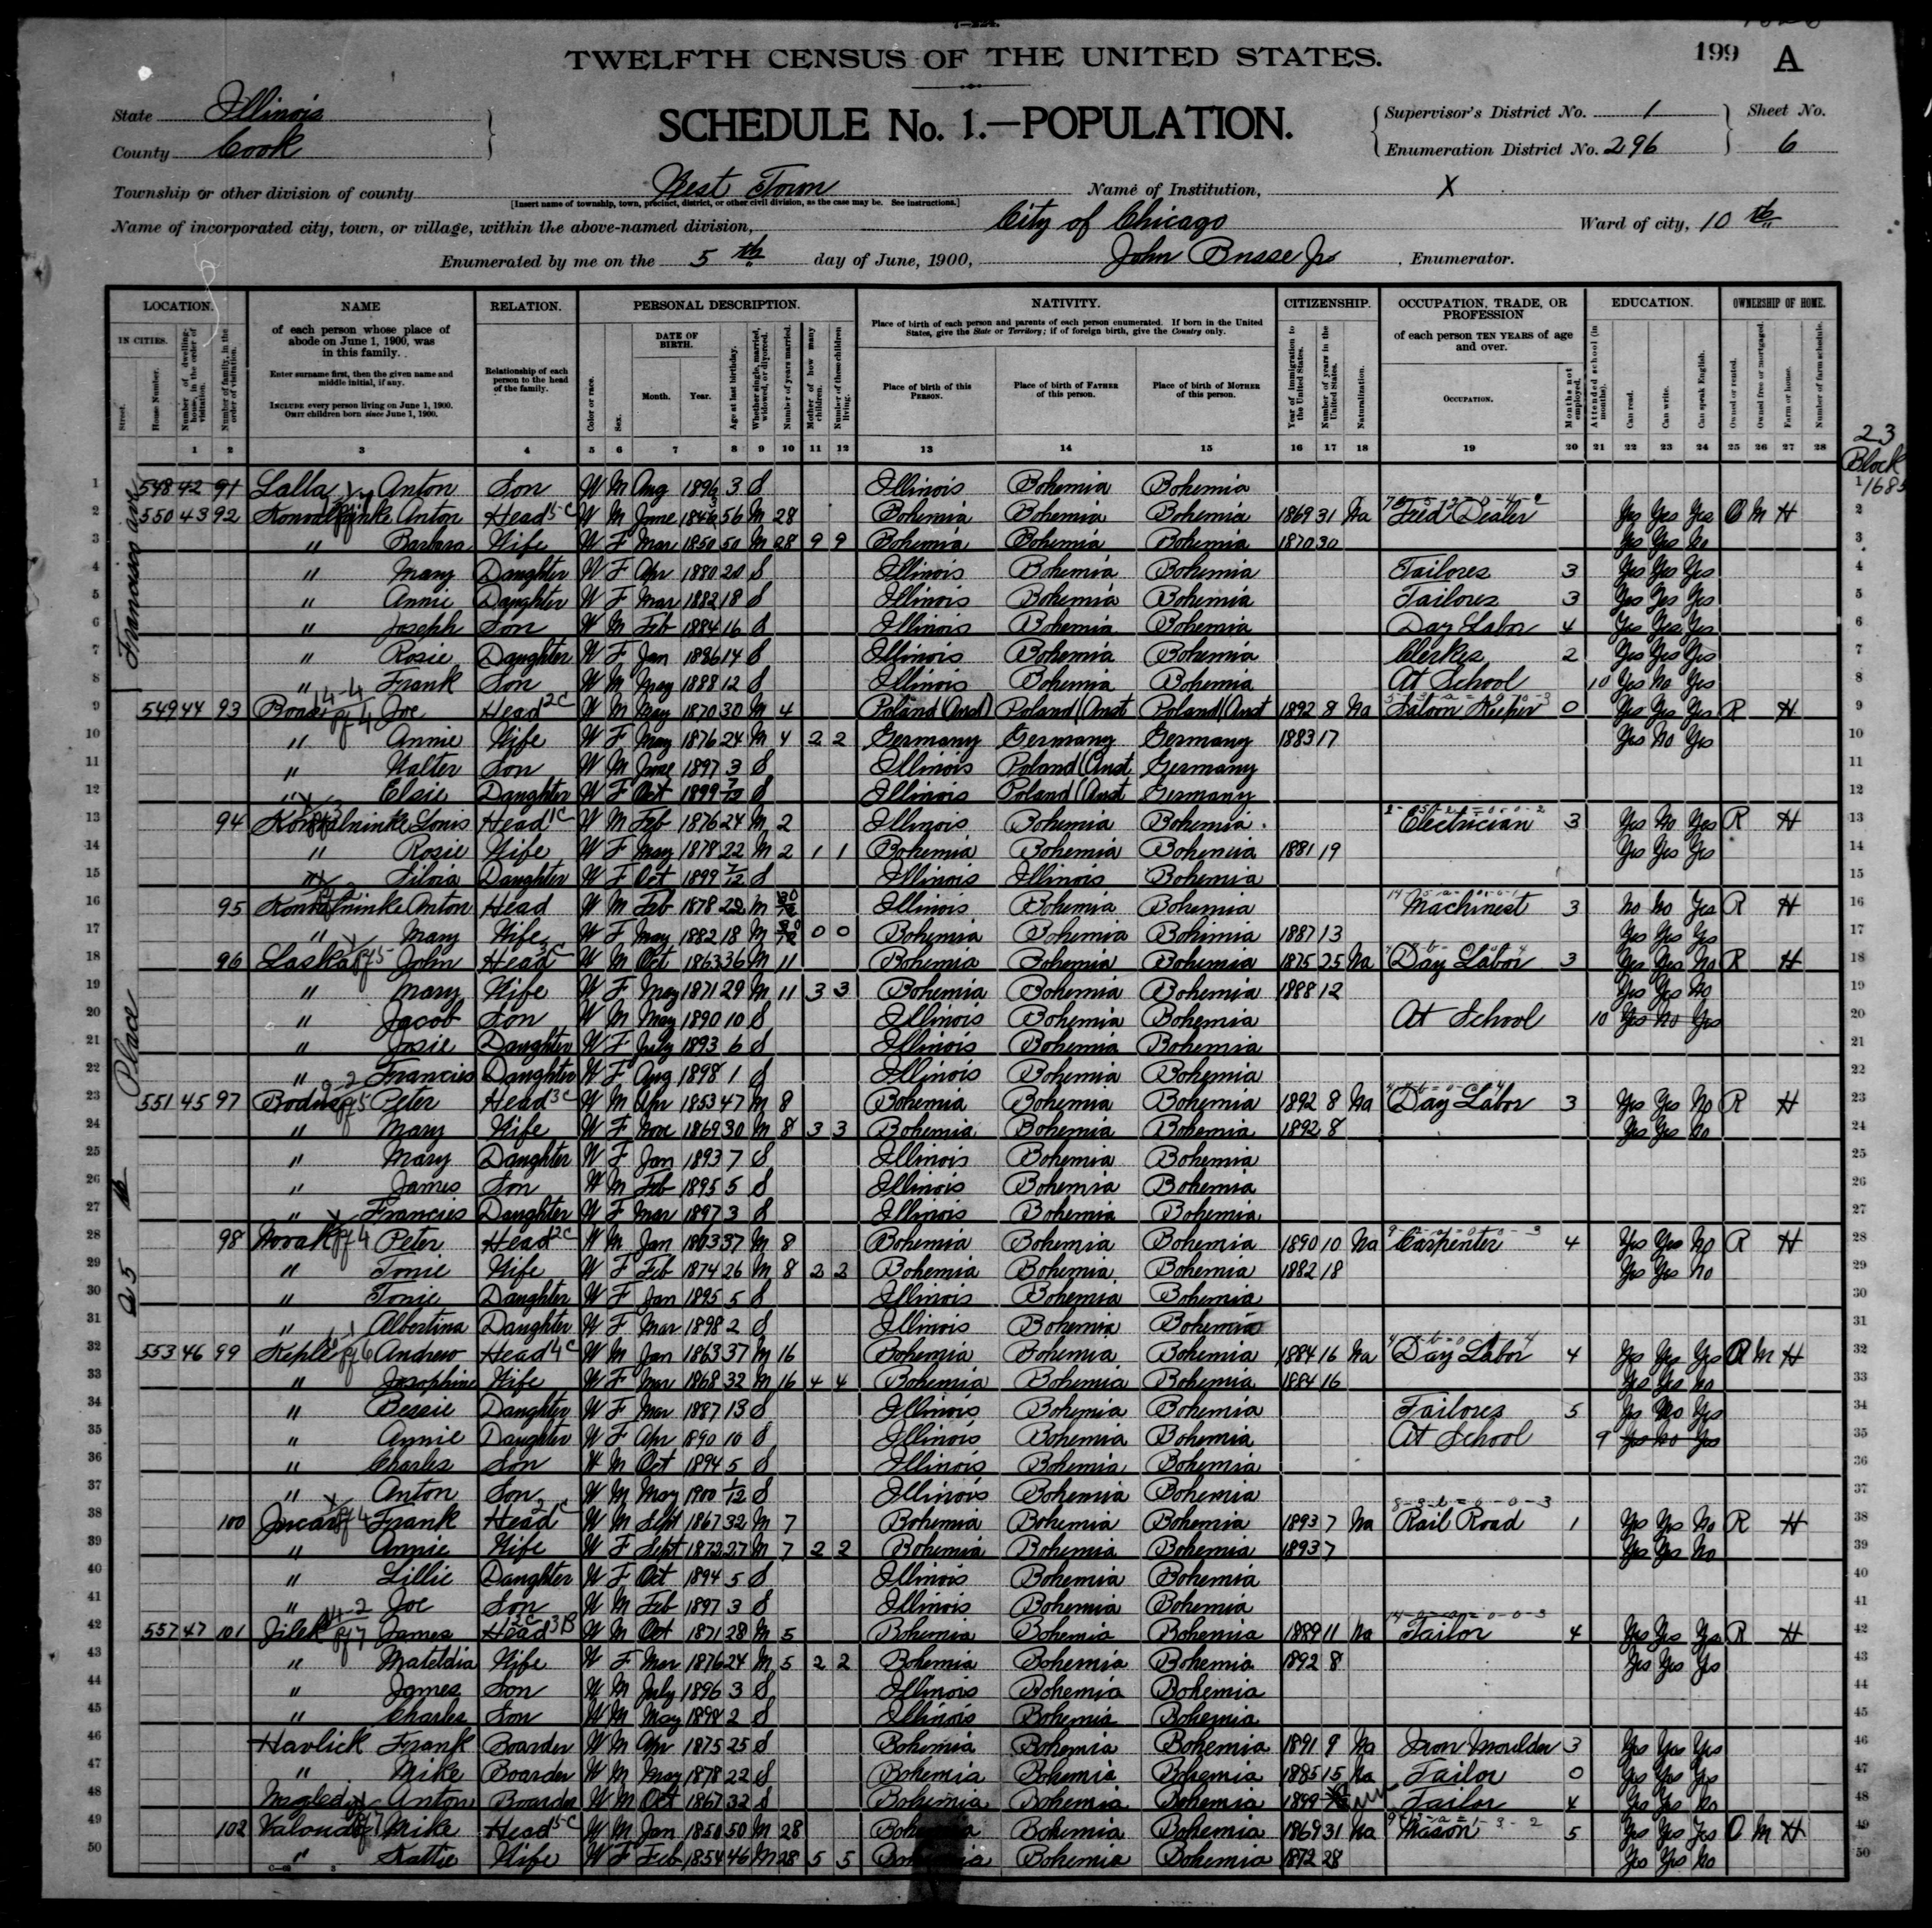 Illinois: COOK County, Enumeration District 296, Sheet No. 6A